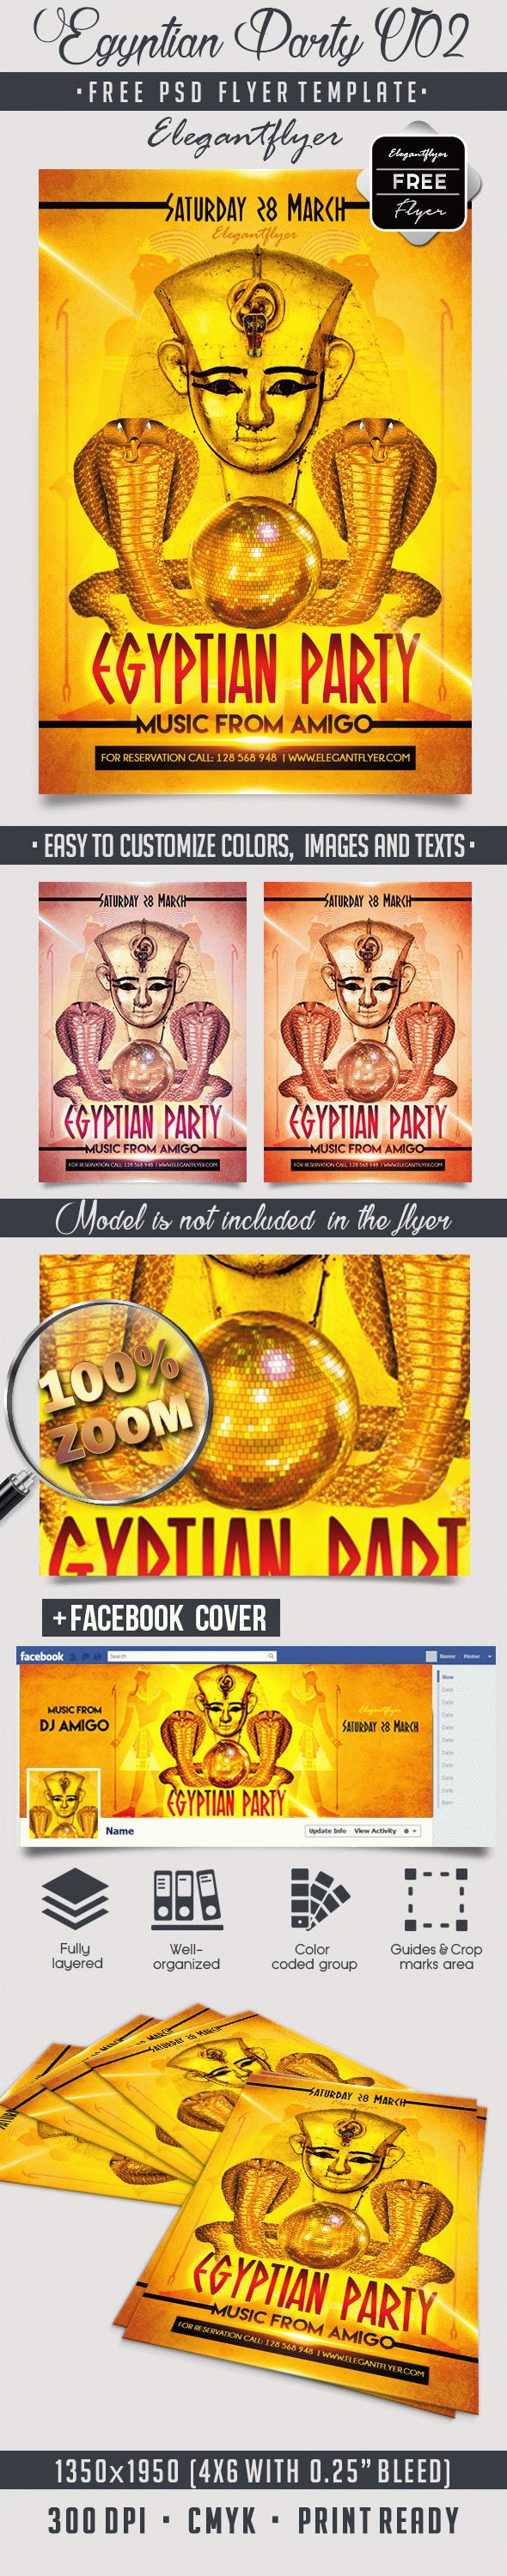 Egyptian Party V02 – Free Flyer PSD Template + Facebook Cover